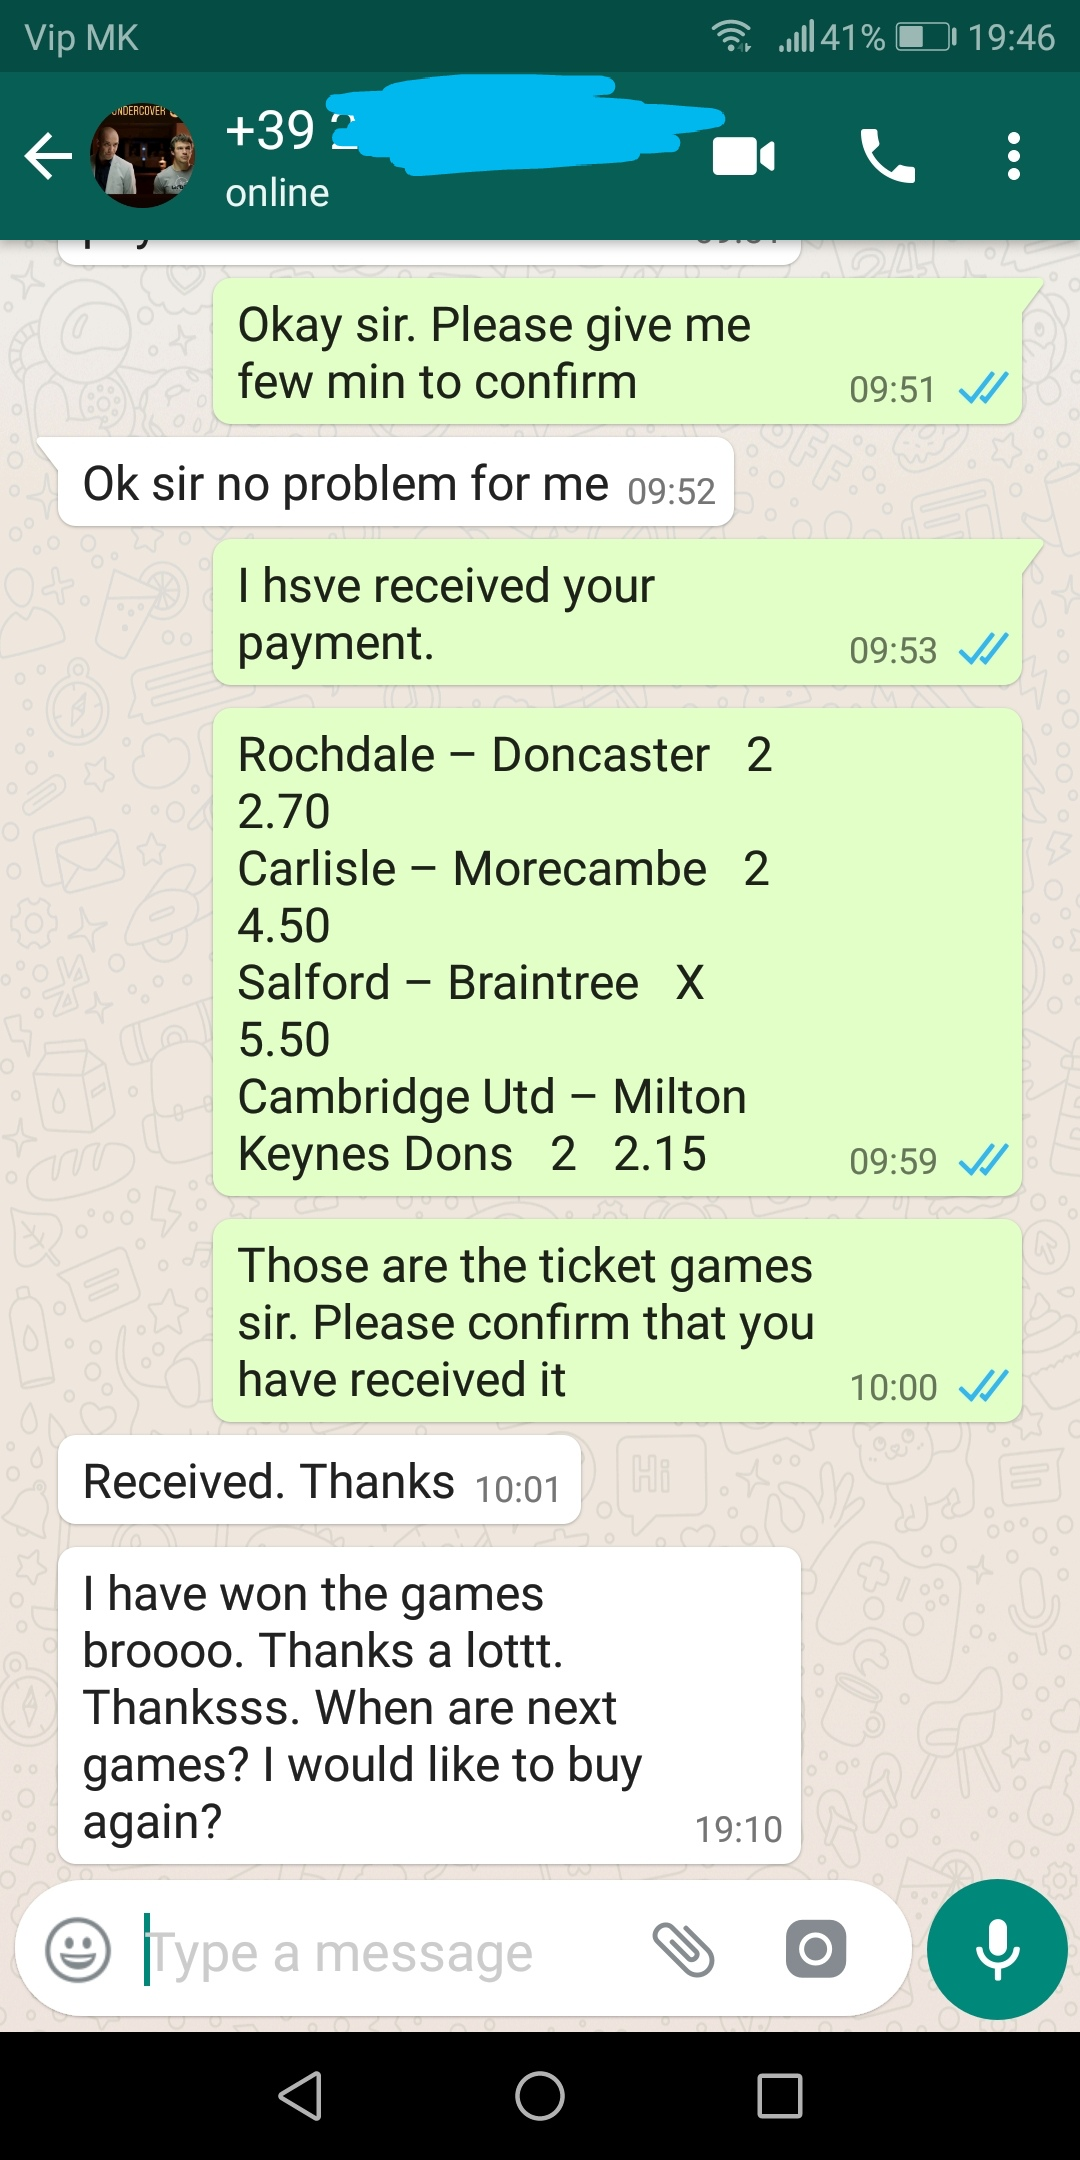 http://pro-soccertip.com/wp-content/uploads/2018/10/ticket-whatsapp-13-10-2018.jpg